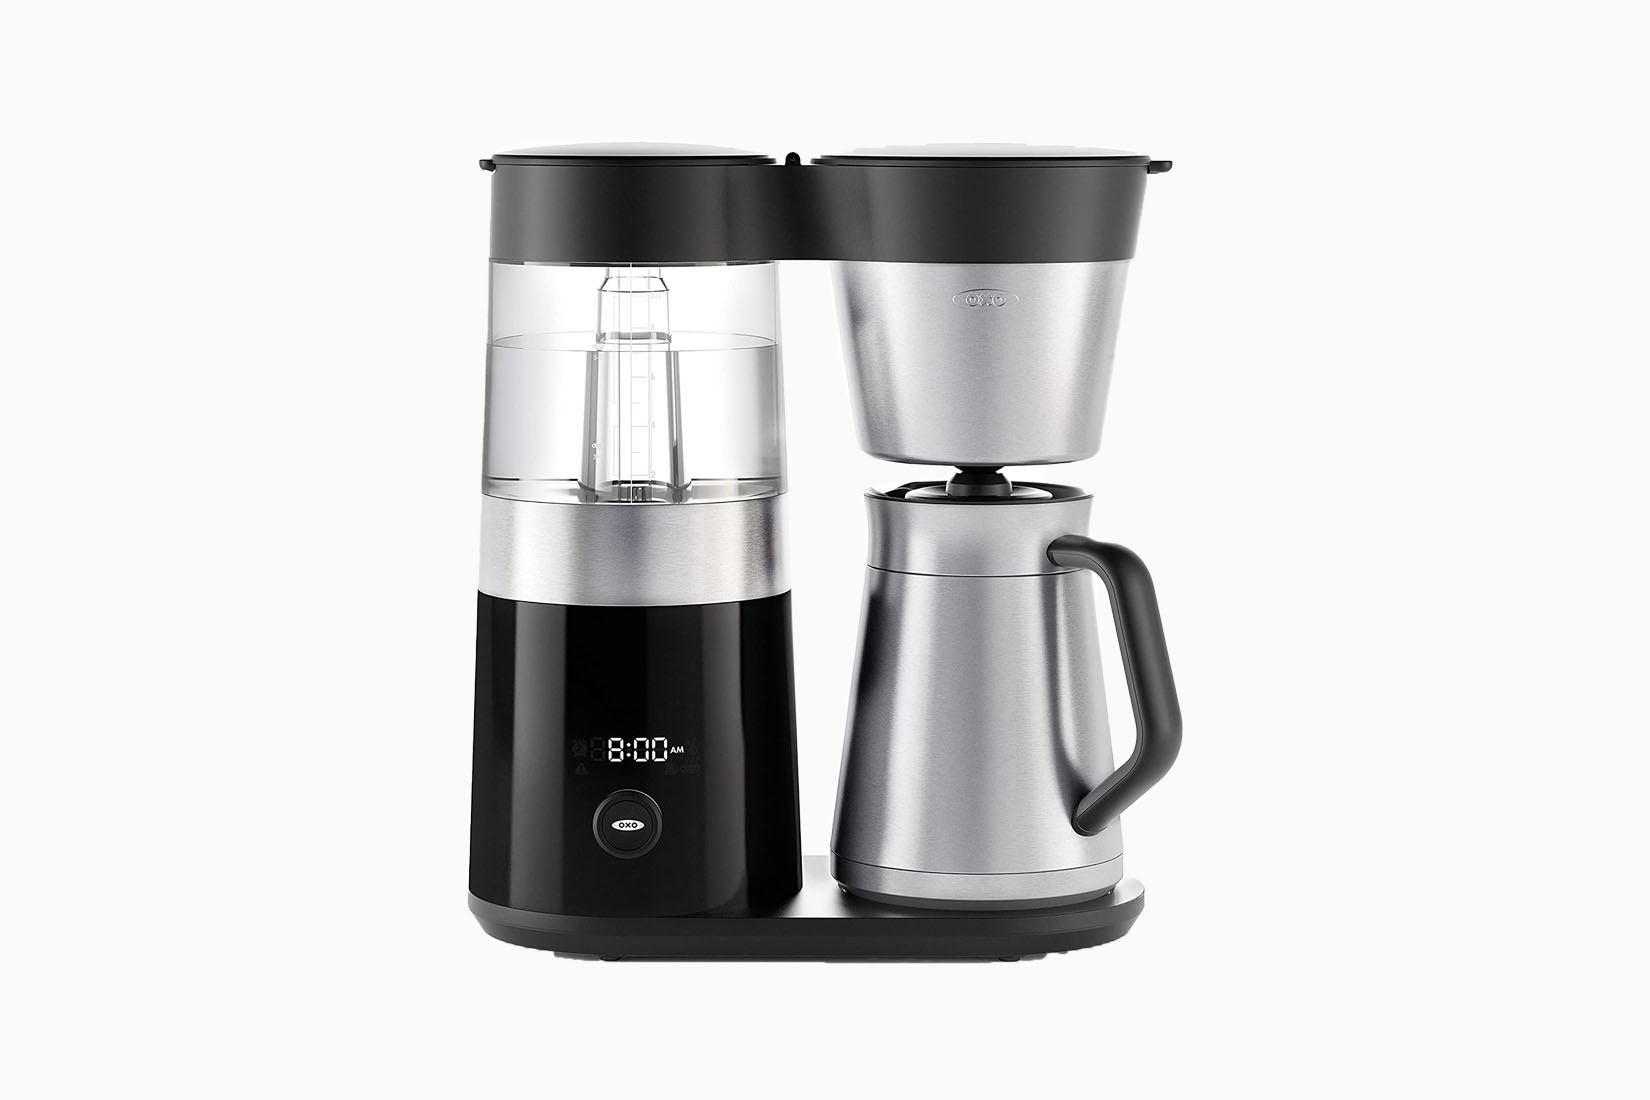 best drip coffee makers oxo review Luxe Digital